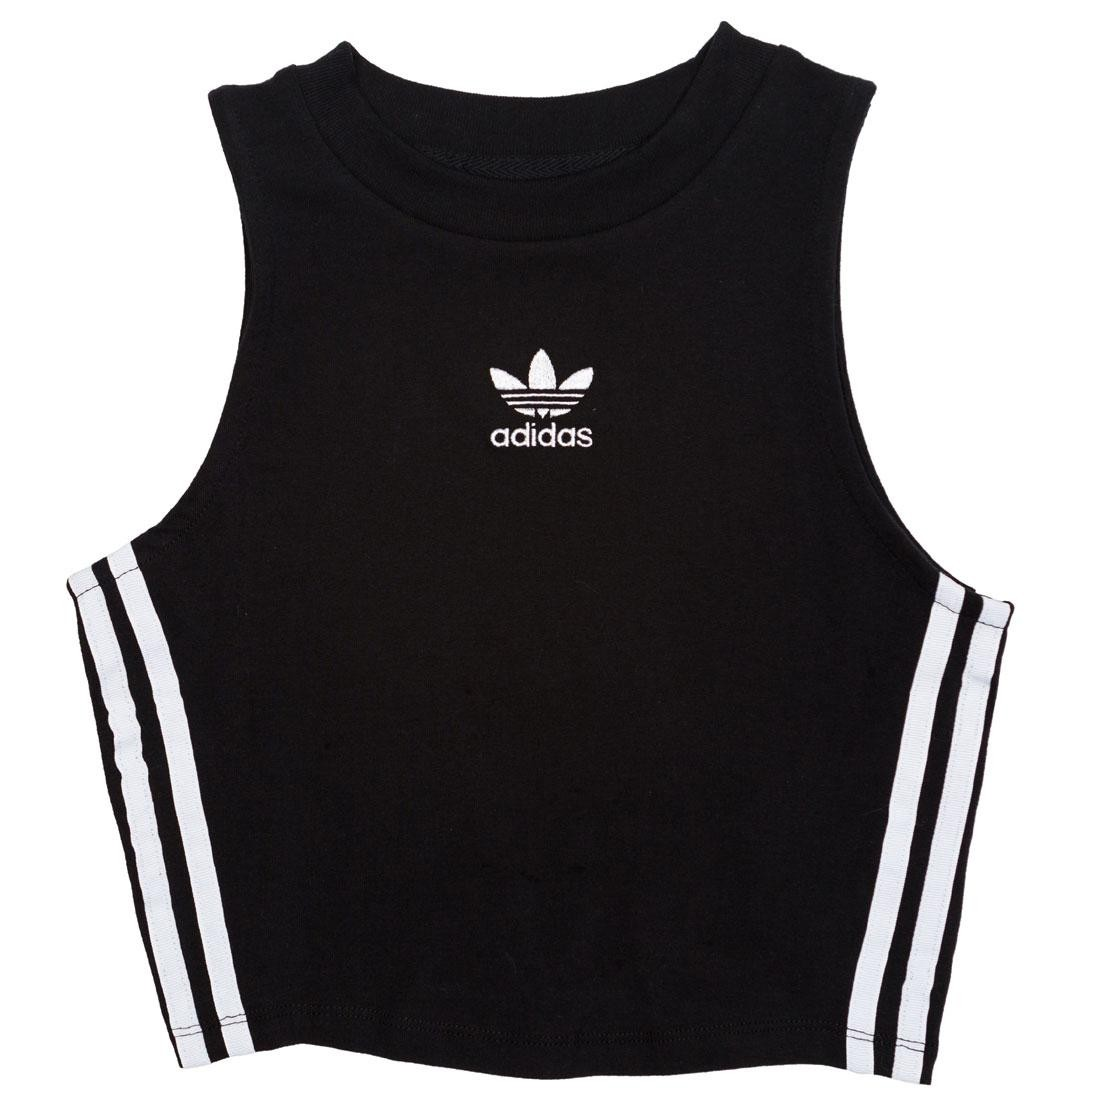 7d252559c7292 Adidas Women Crop Top Tank black